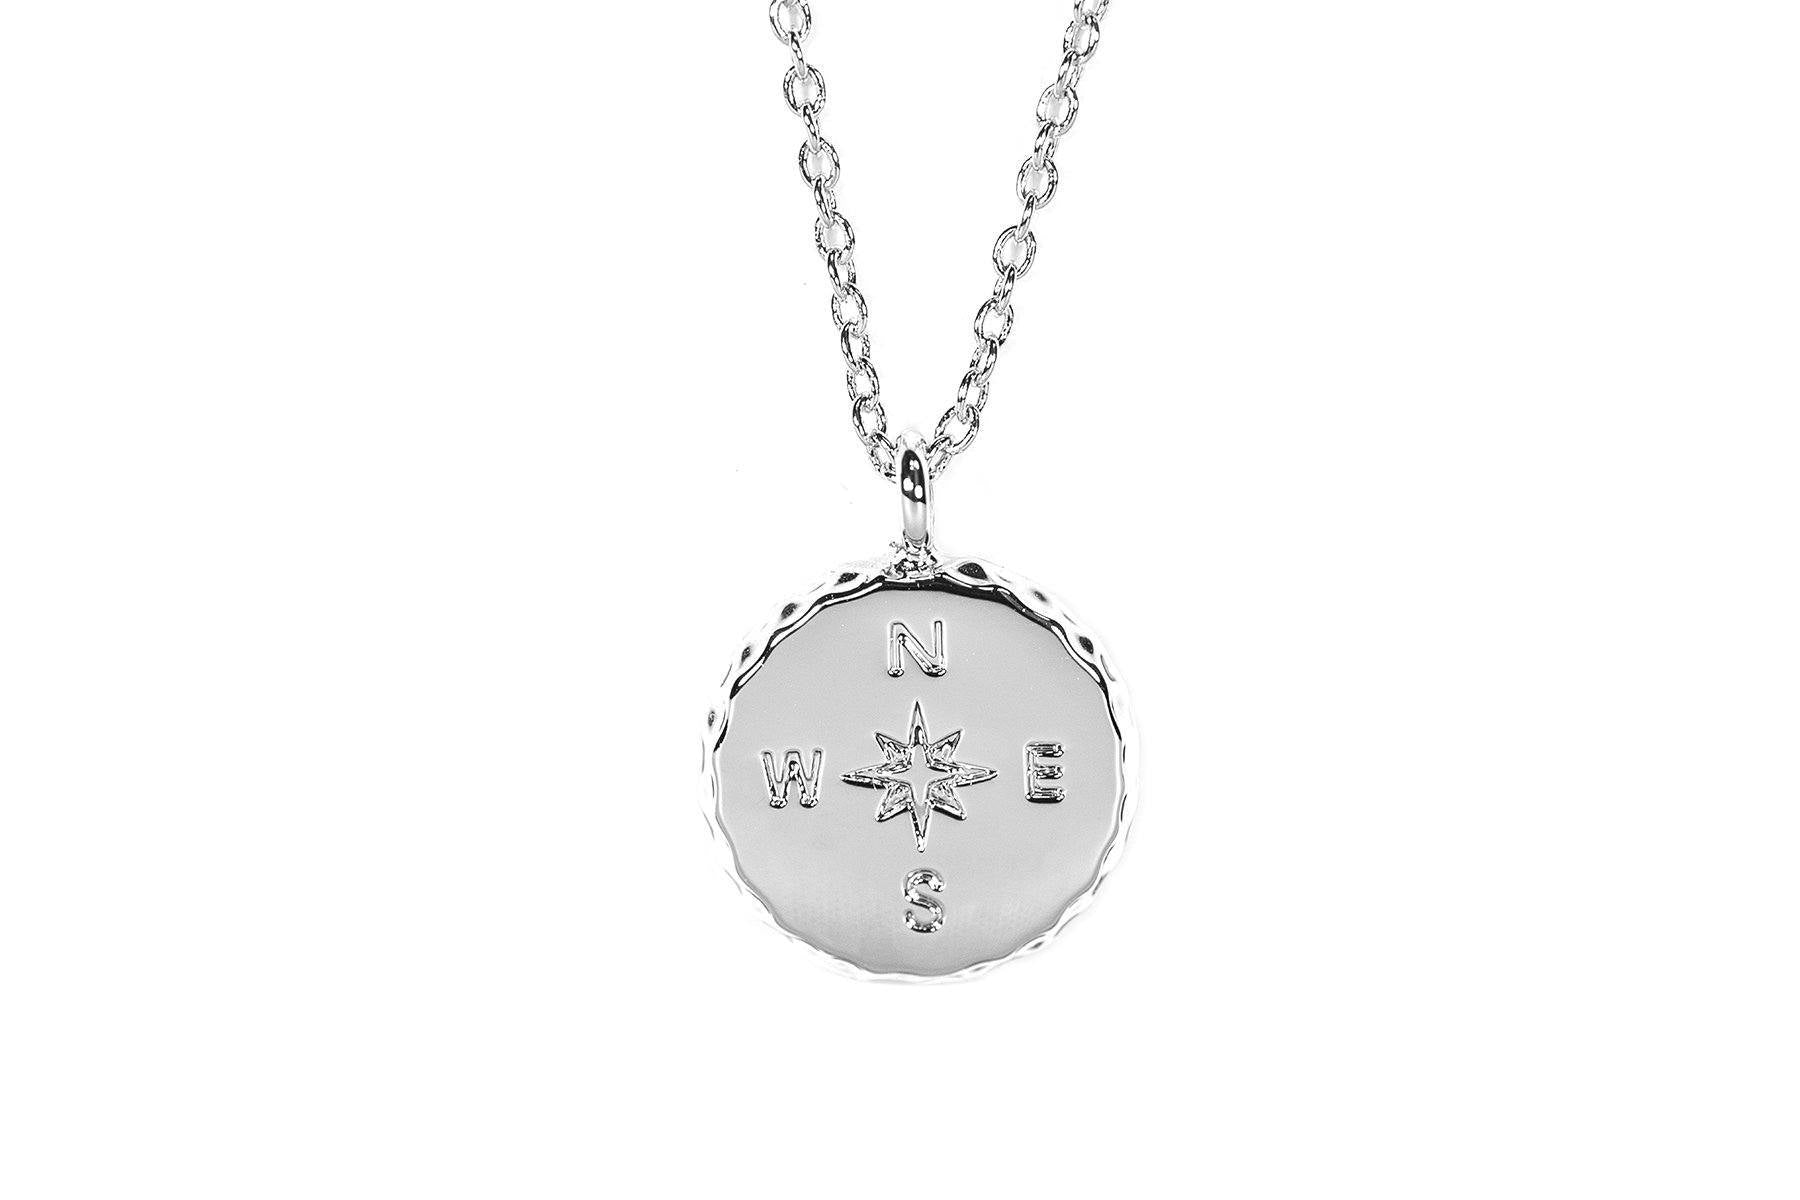 Silver Compass Necklace by Pura Vida